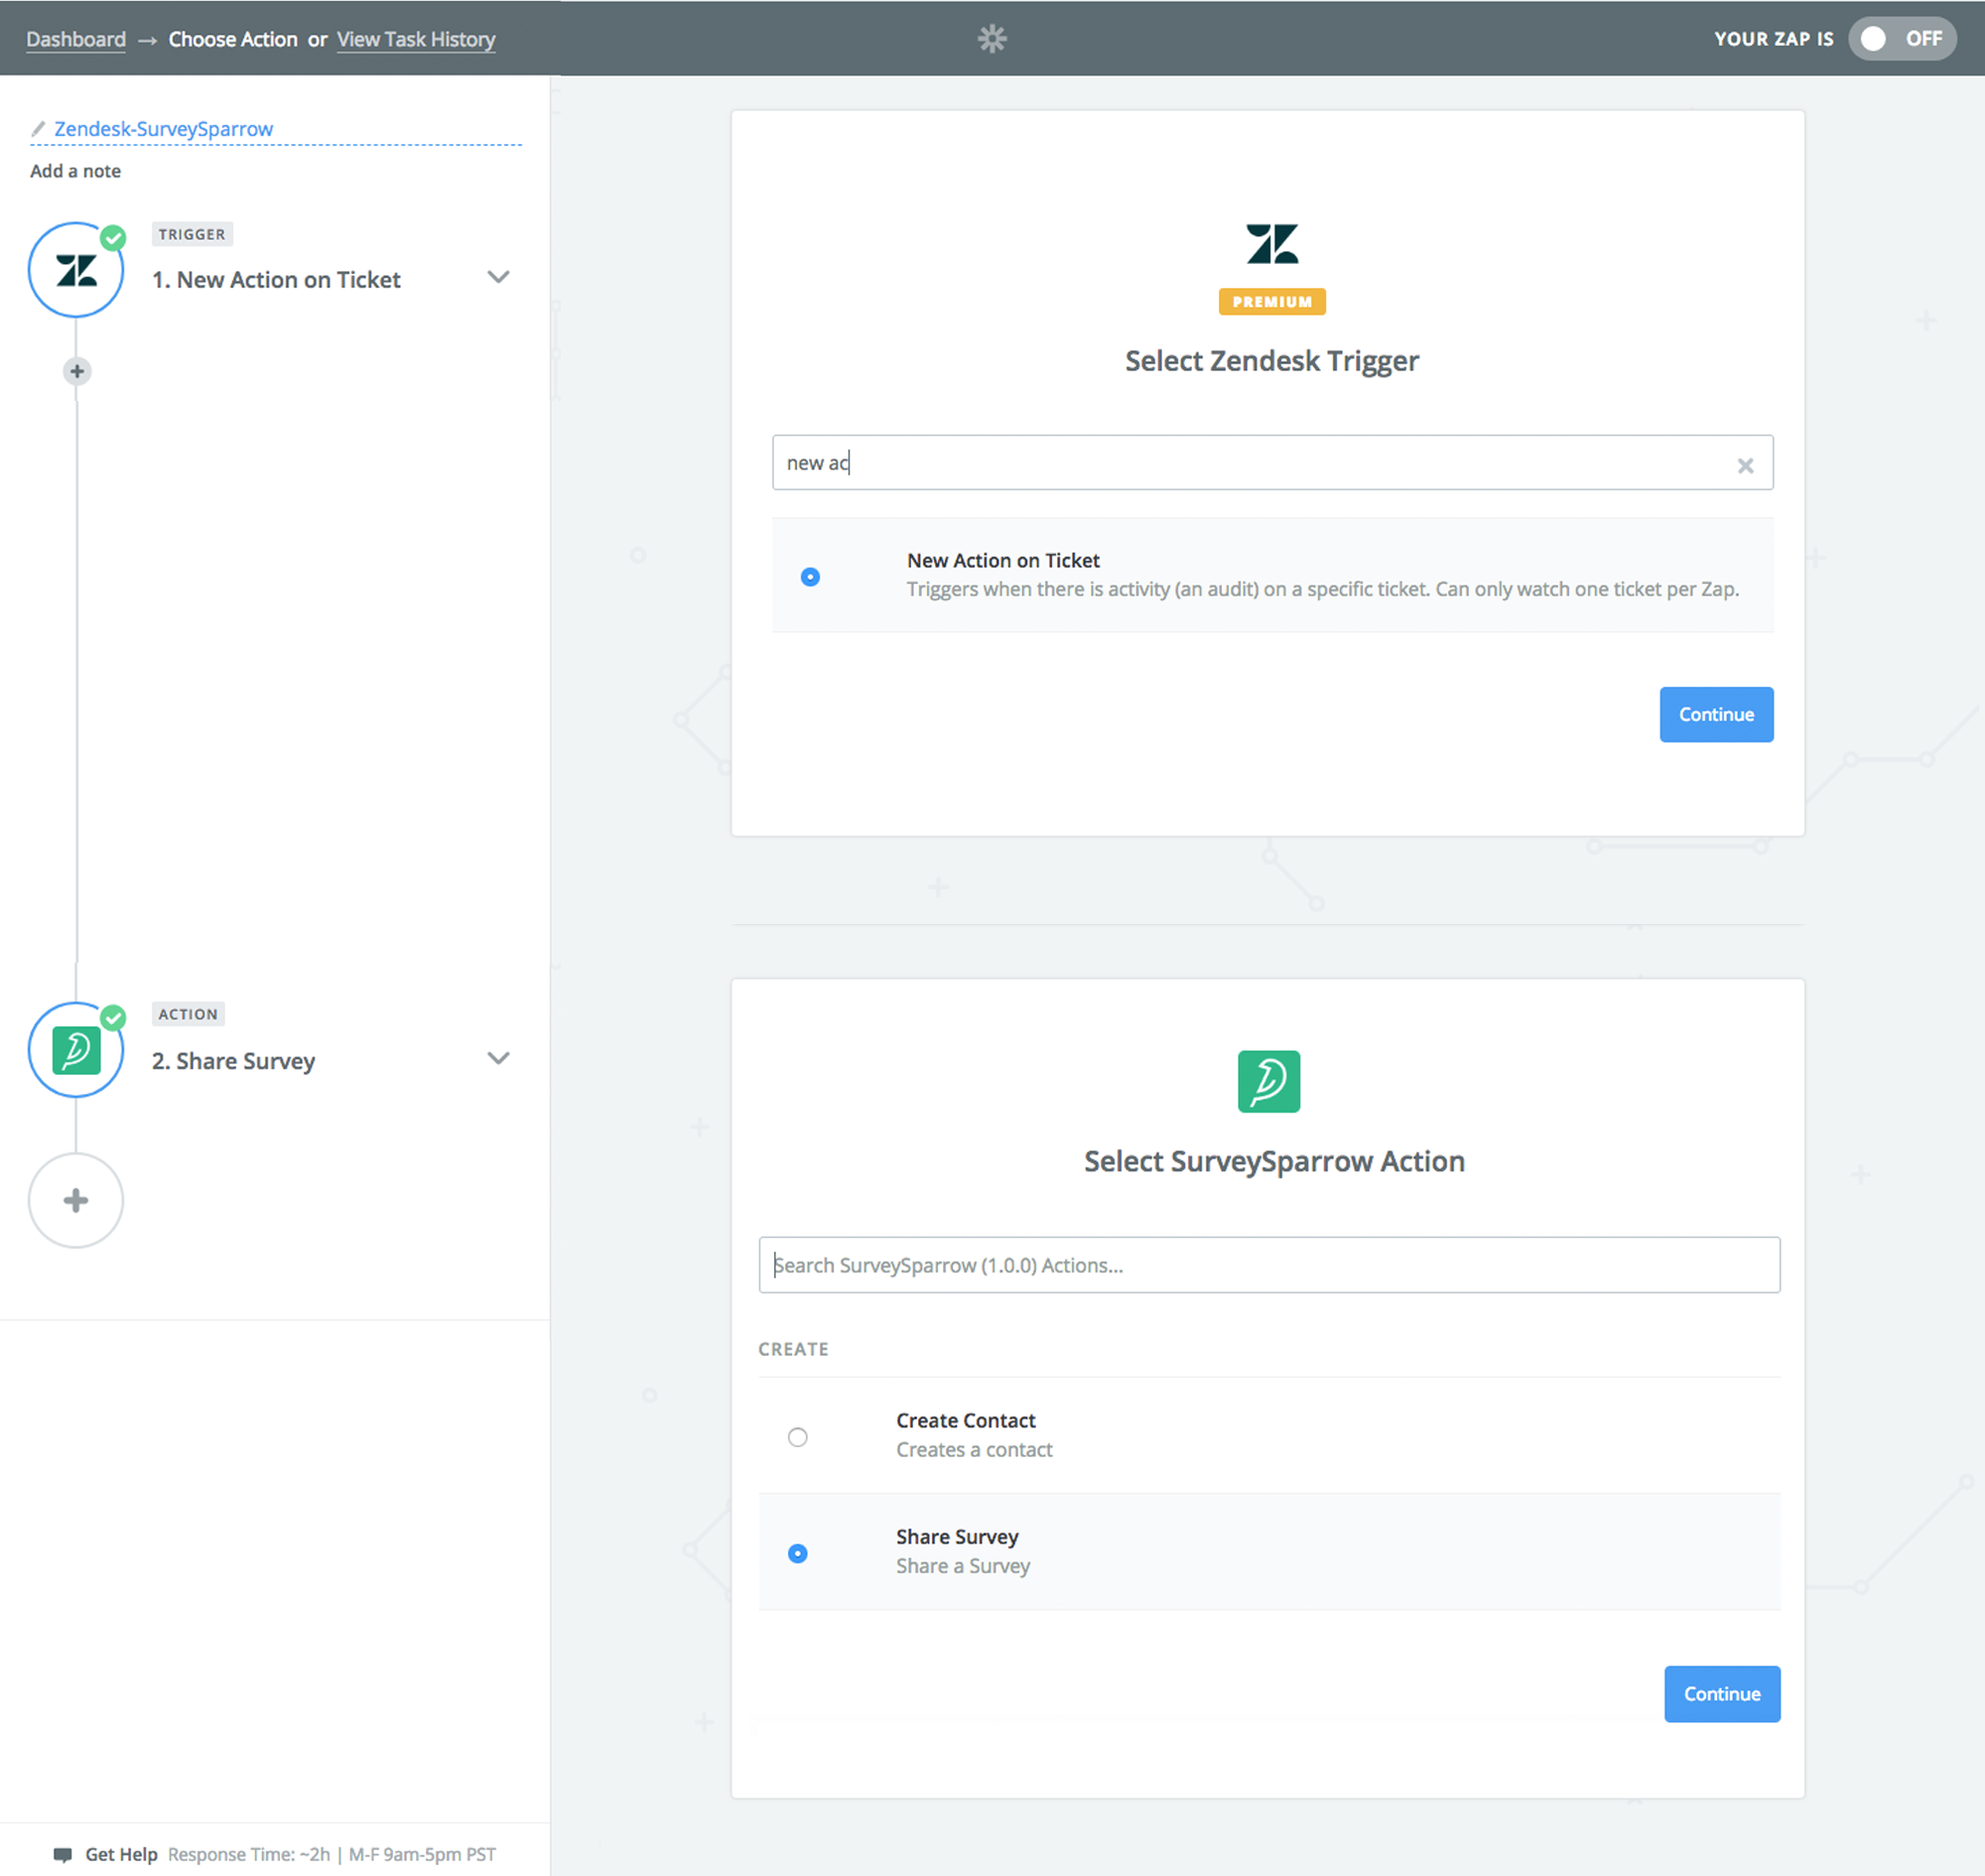 Engage surveys into your workflow and sync up with other apps. Try SurveySparrow & Zapier integration, today!